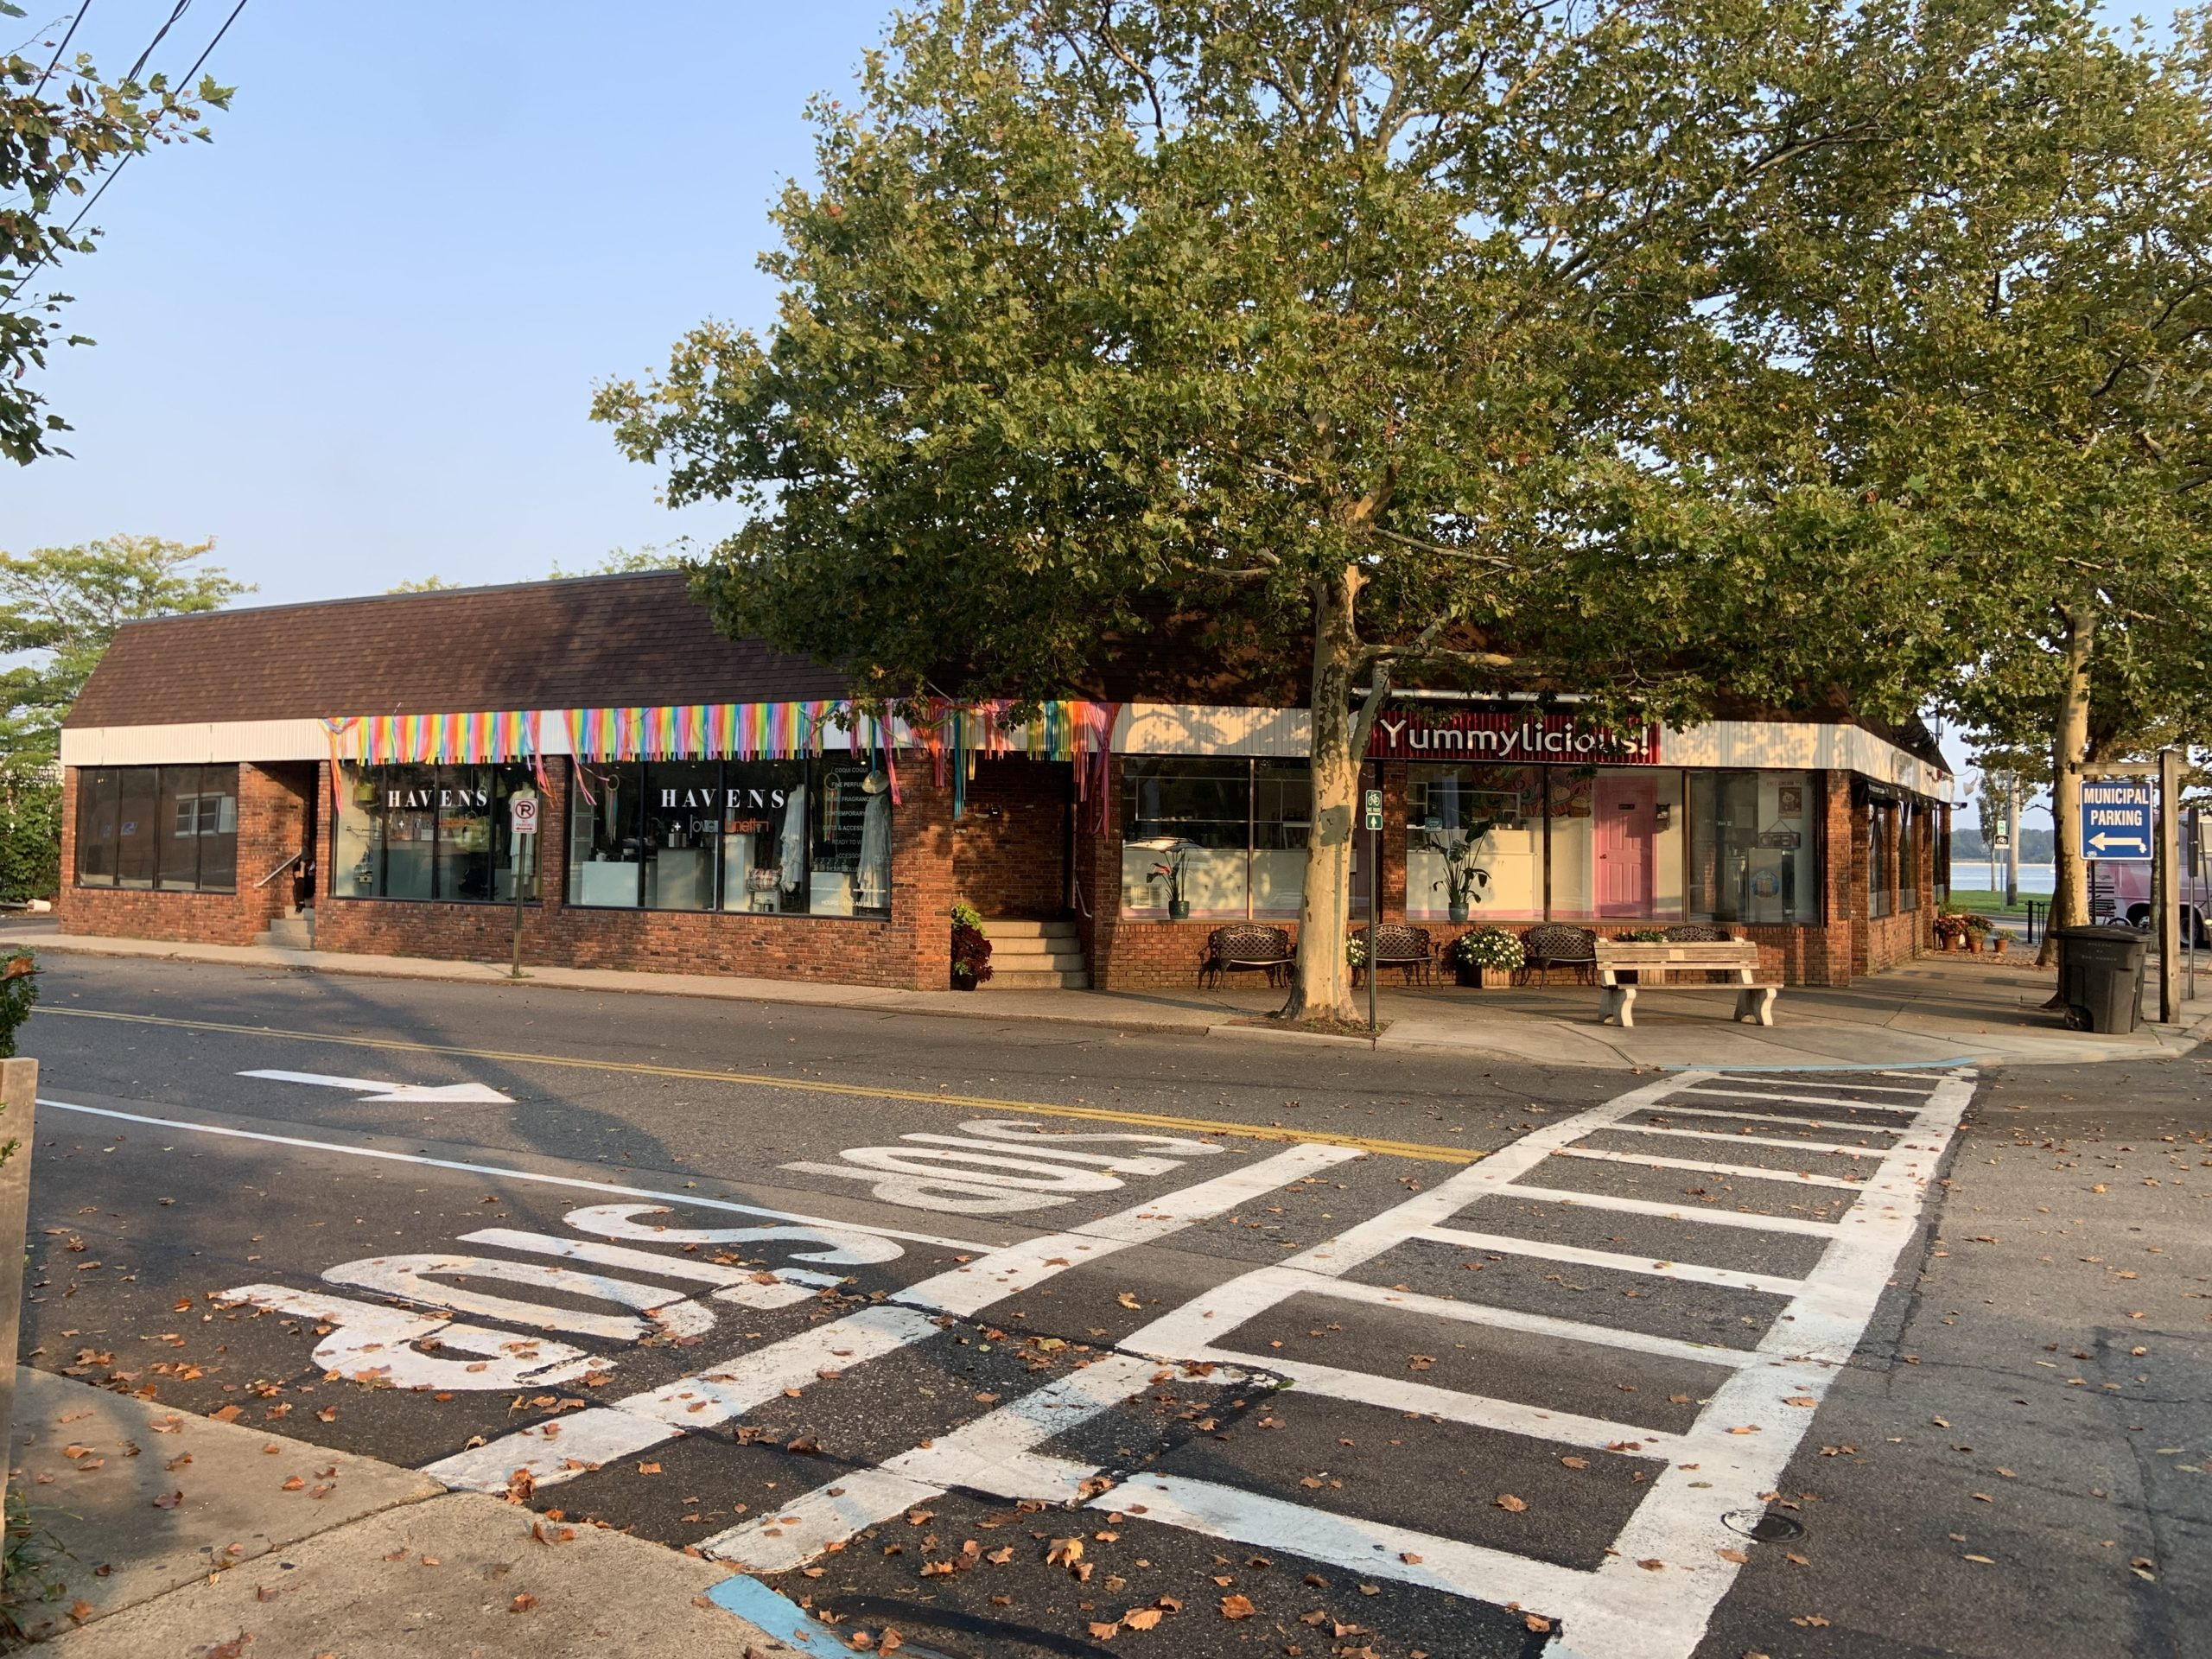 The commercial building at 2 Main Street in Sag Harbor has been sold to an investment group associated with the effort to build a new Bay Street Theater on the village waterfront. STEPHEN J. KOTZ